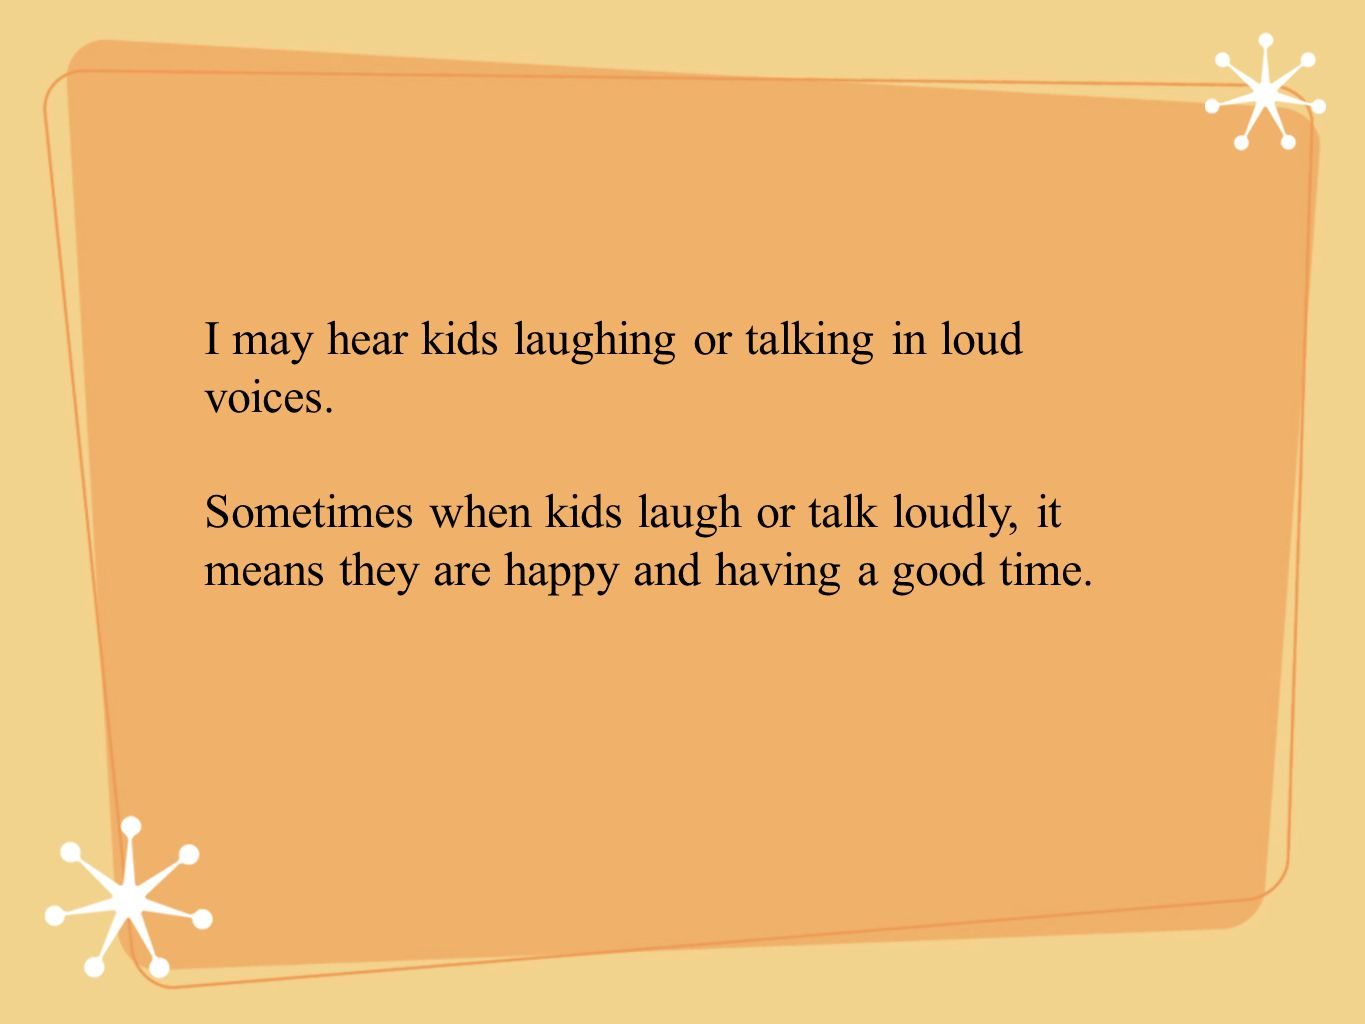 I may hear kids laughing or talking in loud voices.